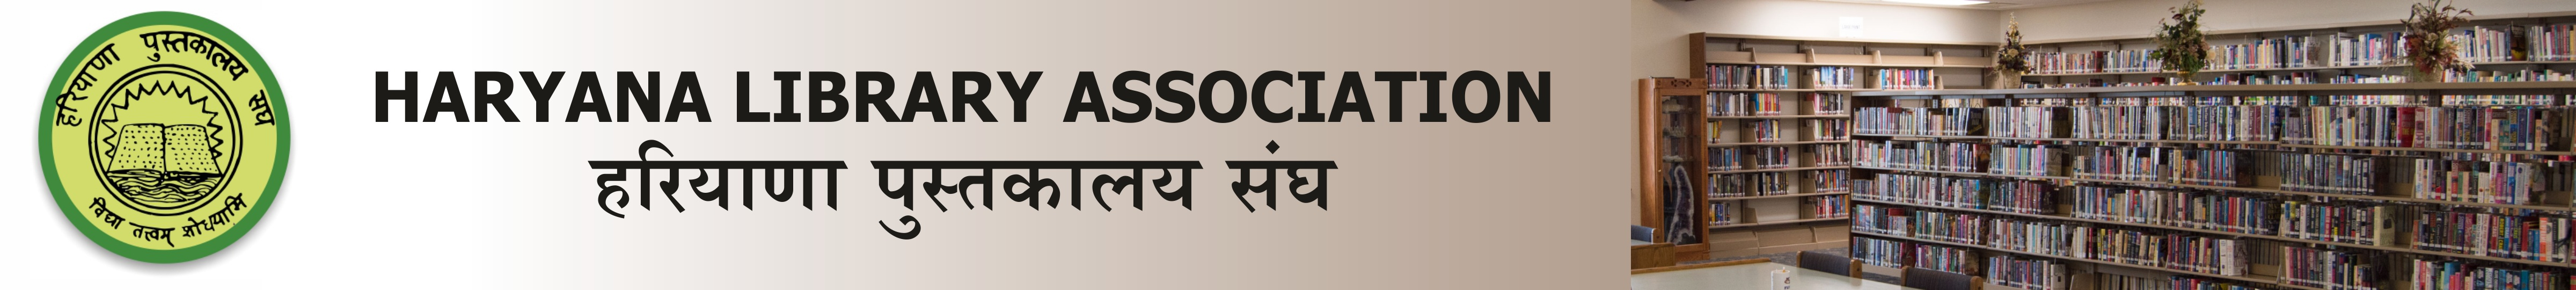 Haryana Library Association